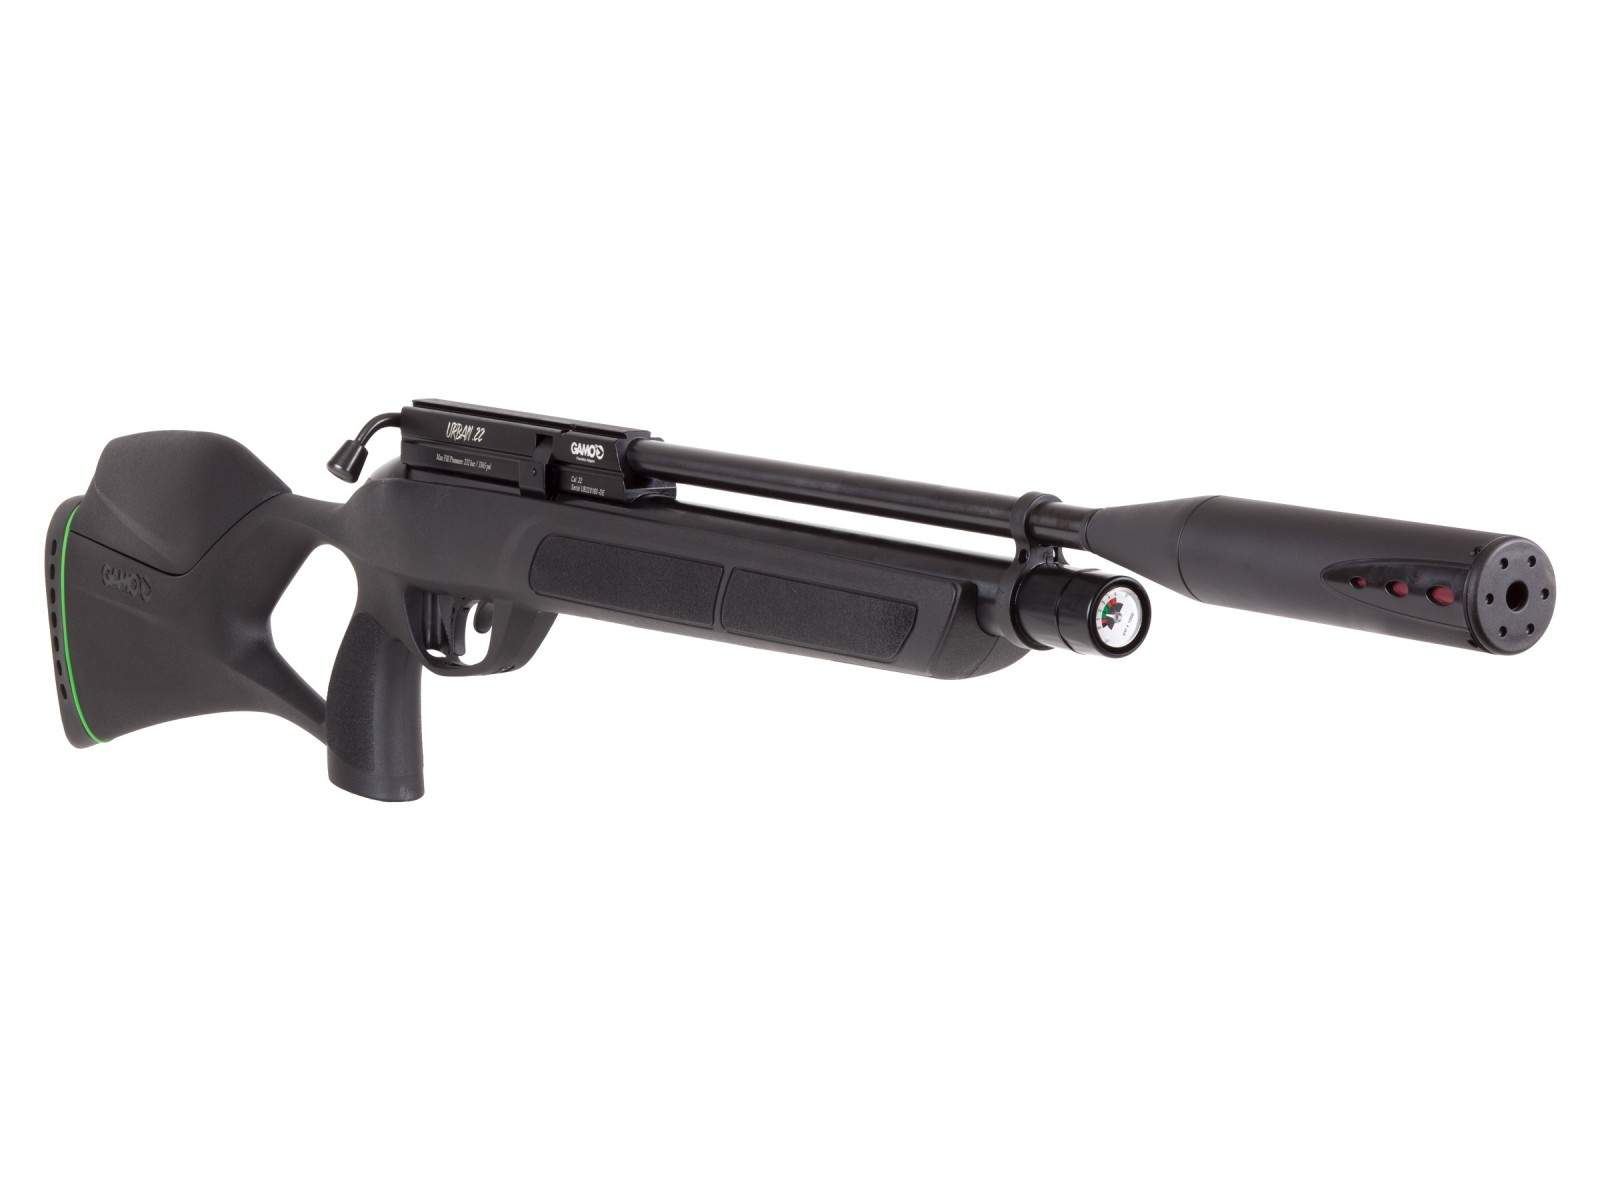 Gamo Urban PCP air rifle